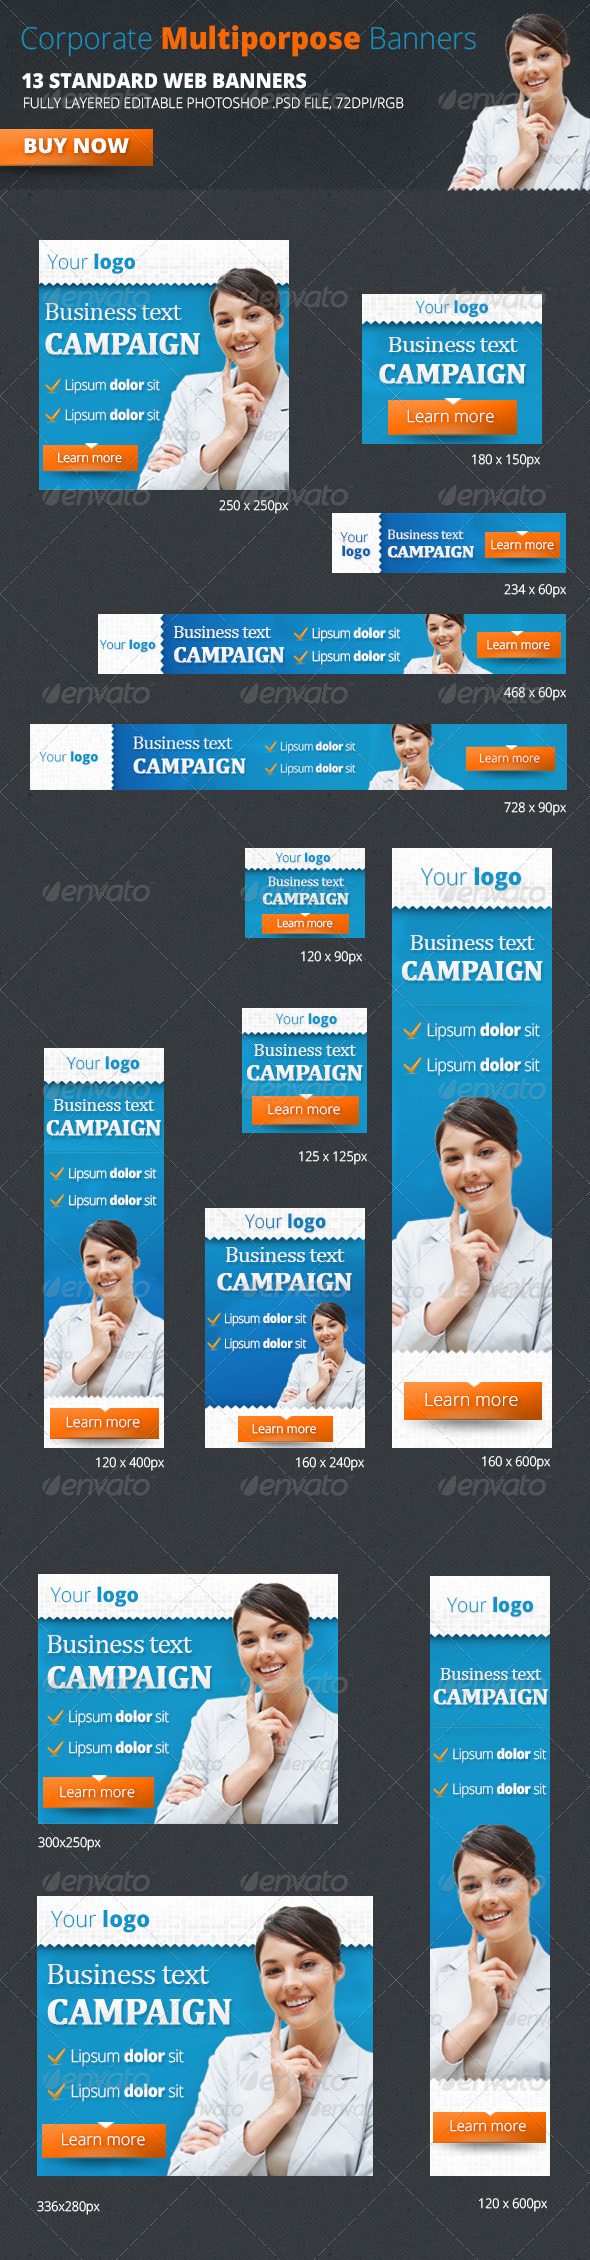 Corporate Multiporpose Banners - Banners & Ads Web Elements